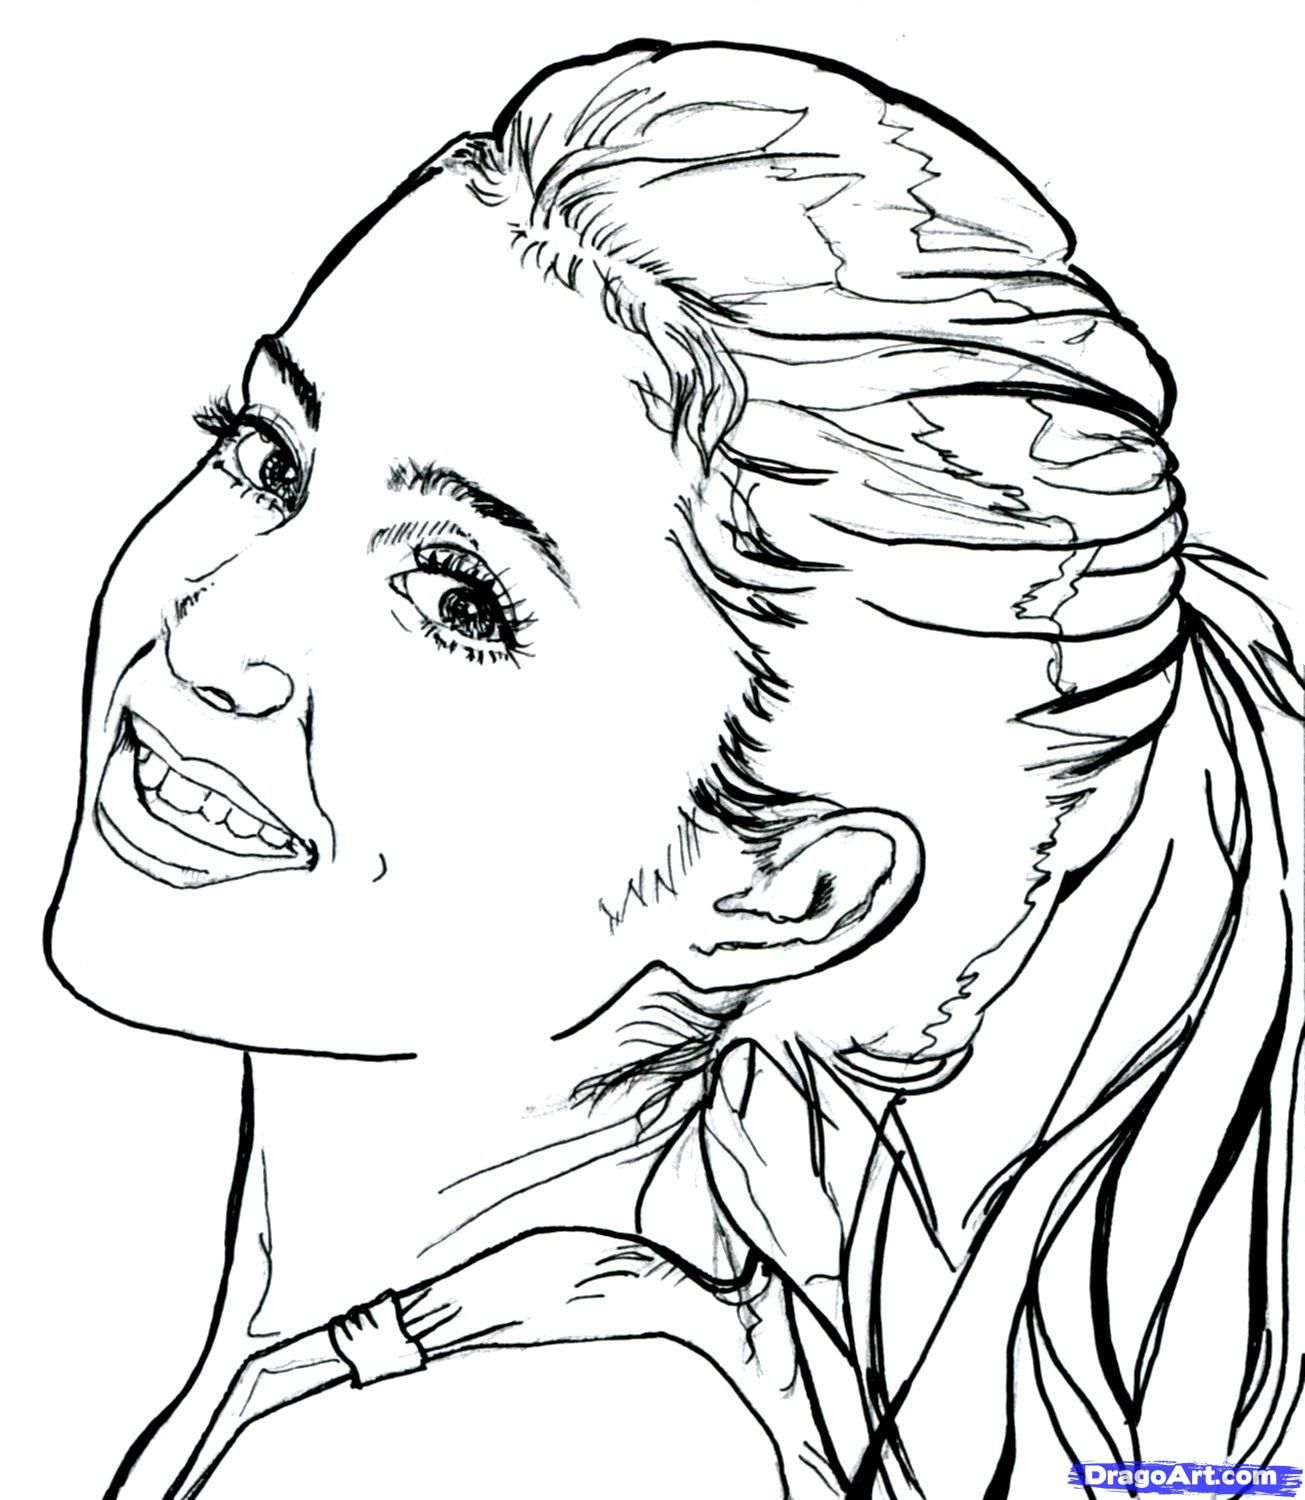 Adult Beauty Victorious Coloring Pages Gallery Images beauty ariana grande coloring pages games printable for happy birthday free chainimage por gallery images